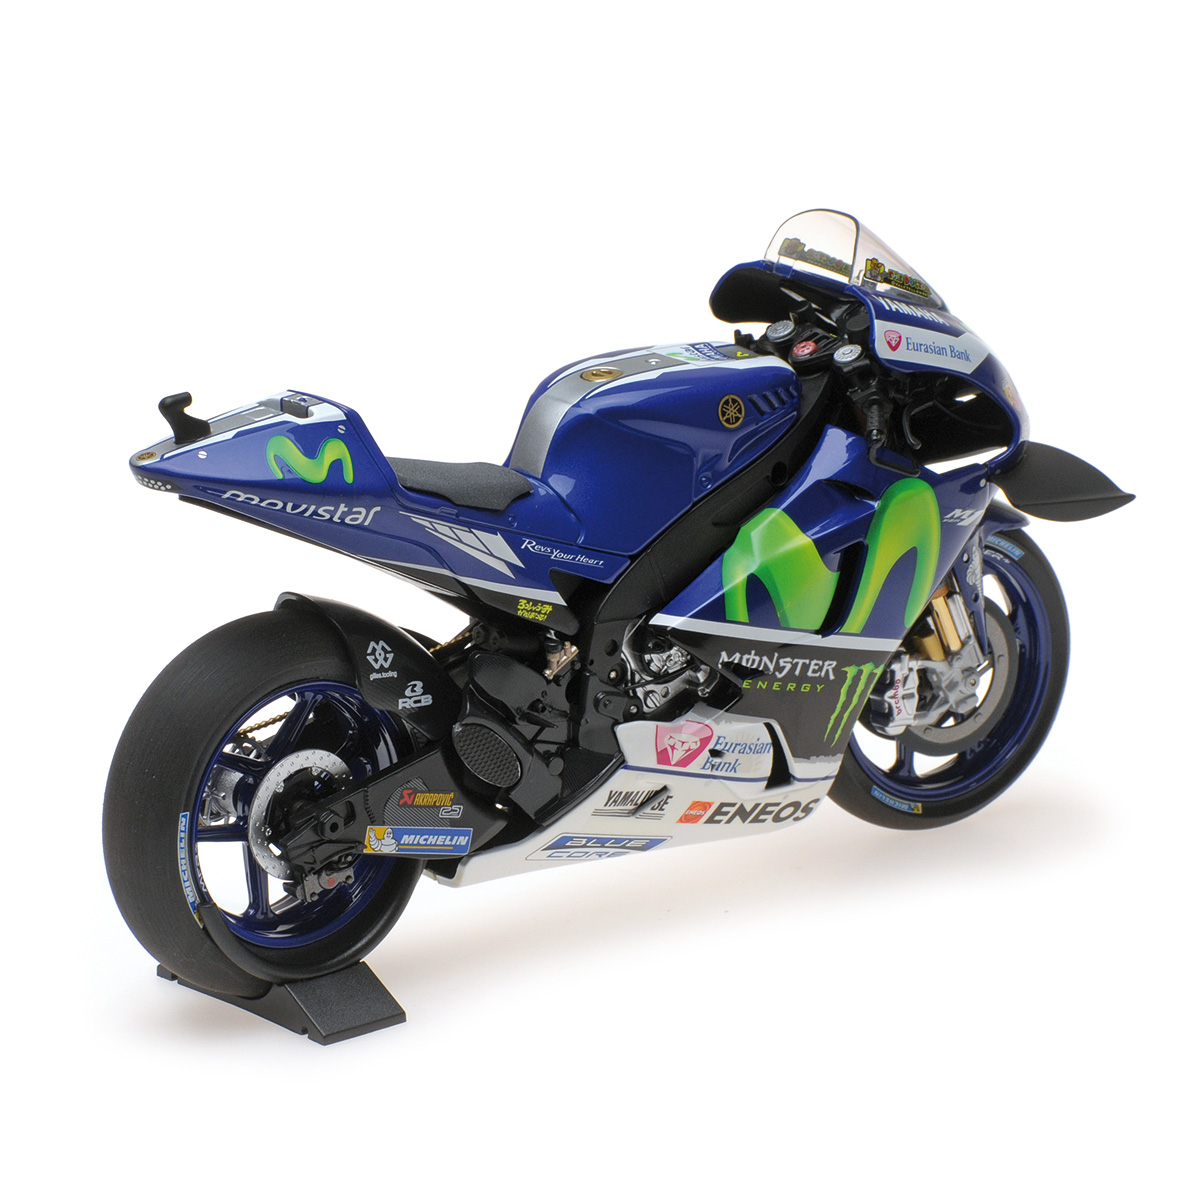 racing scale models yamaha yzr m1 valentino rossi 2016 pcs by minichamps. Black Bedroom Furniture Sets. Home Design Ideas